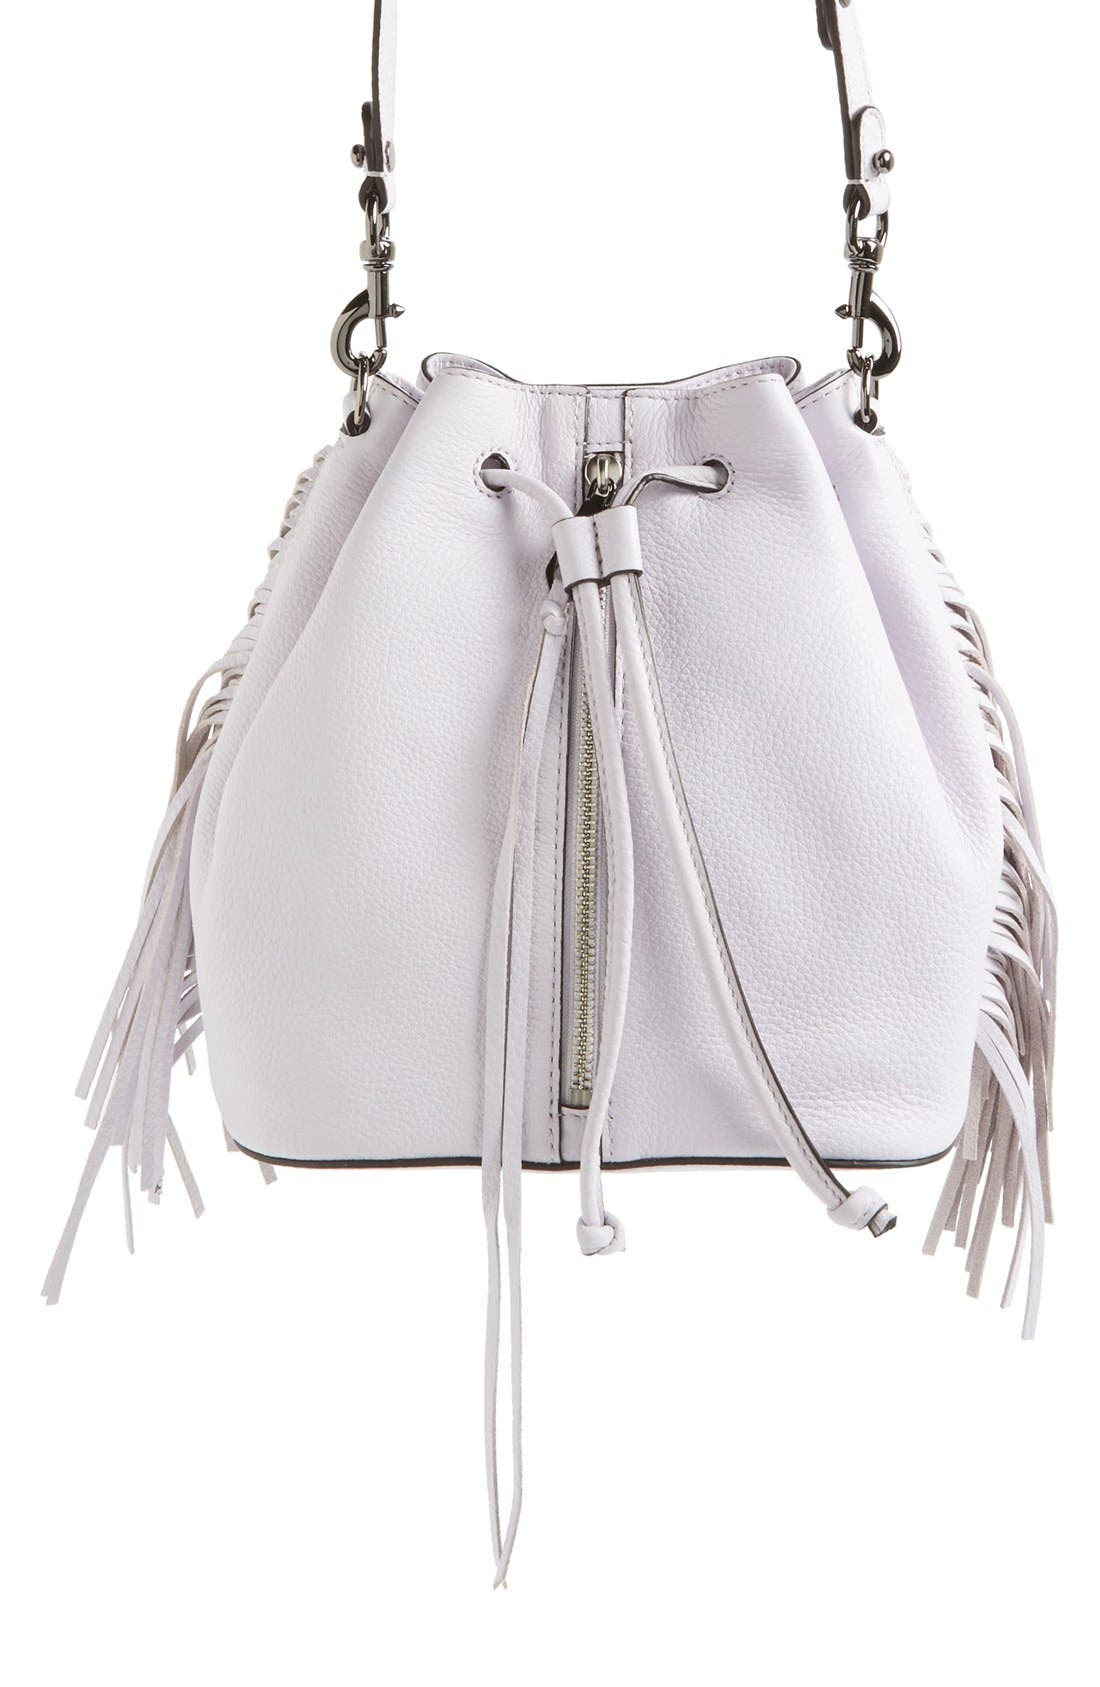 Alternate Image 1 Selected - Rebecca Minkoff 'Mini Fringe Moto' Bucket Bag (Nordstrom Exclusive)